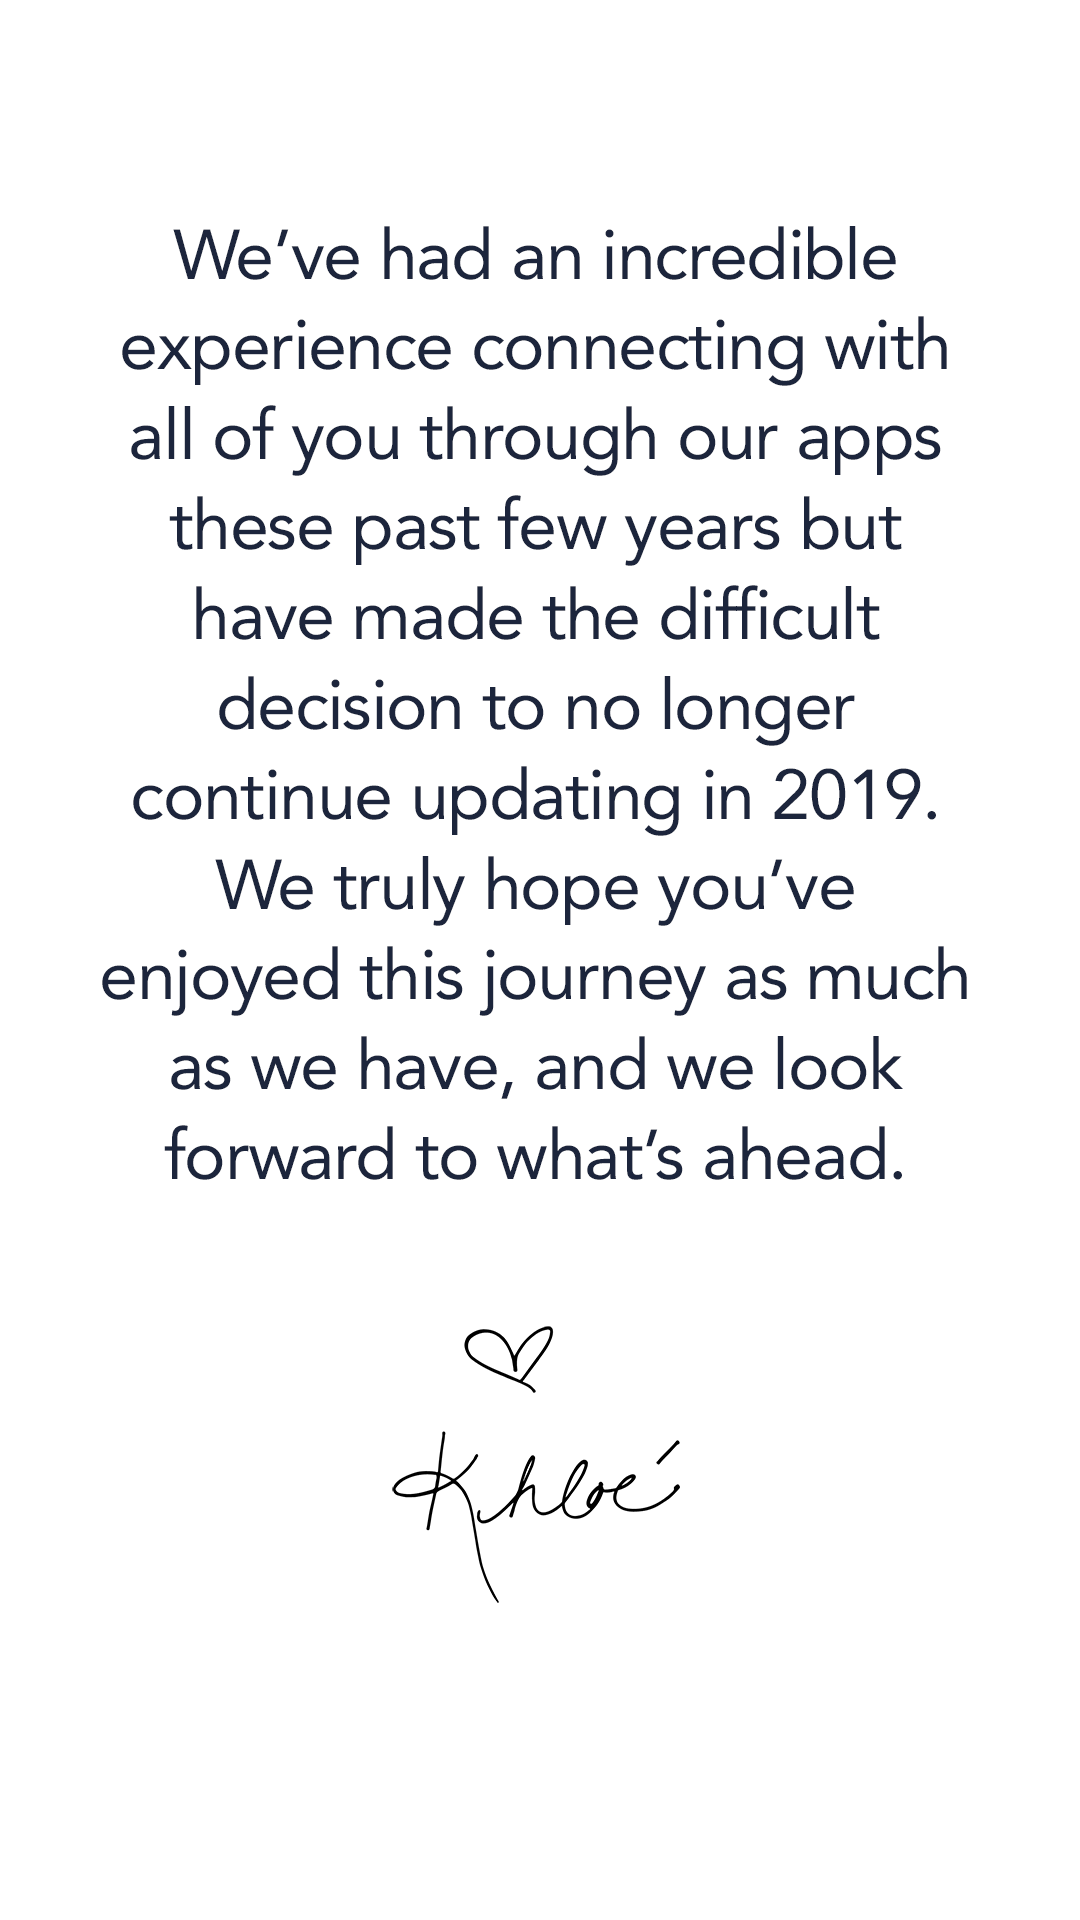 We've had an incredible experience connecting with all of you through our apps these paste few years but have made the difficult decision to no longer continue updating in 2019. We truly hope you've enjoyed this journey as much as we have, and we look forward to what's ahead.